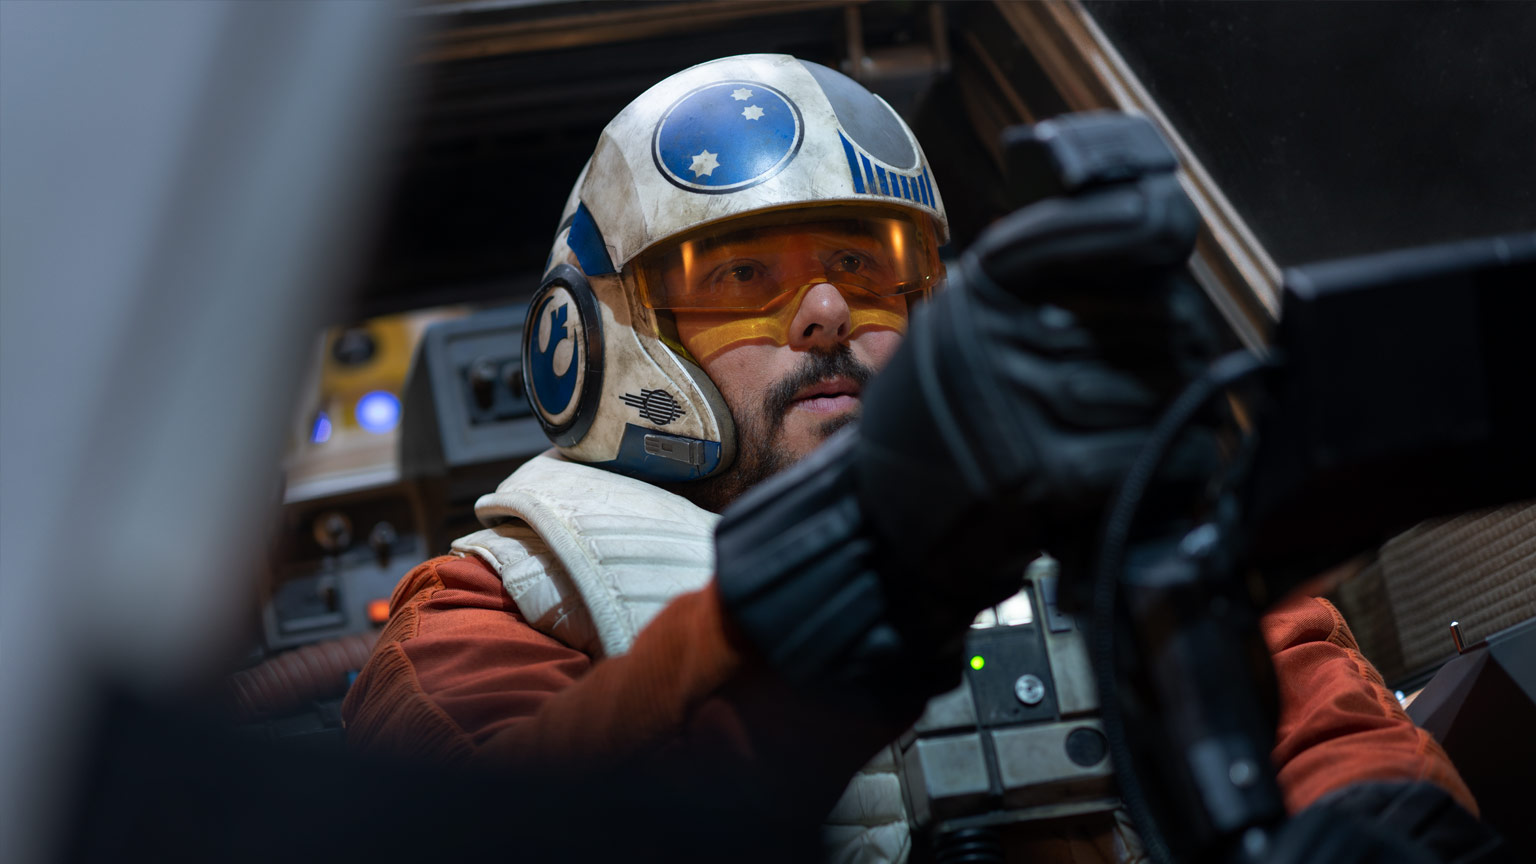 Snap Wexley in Star Wars: The Rise of Skywalker